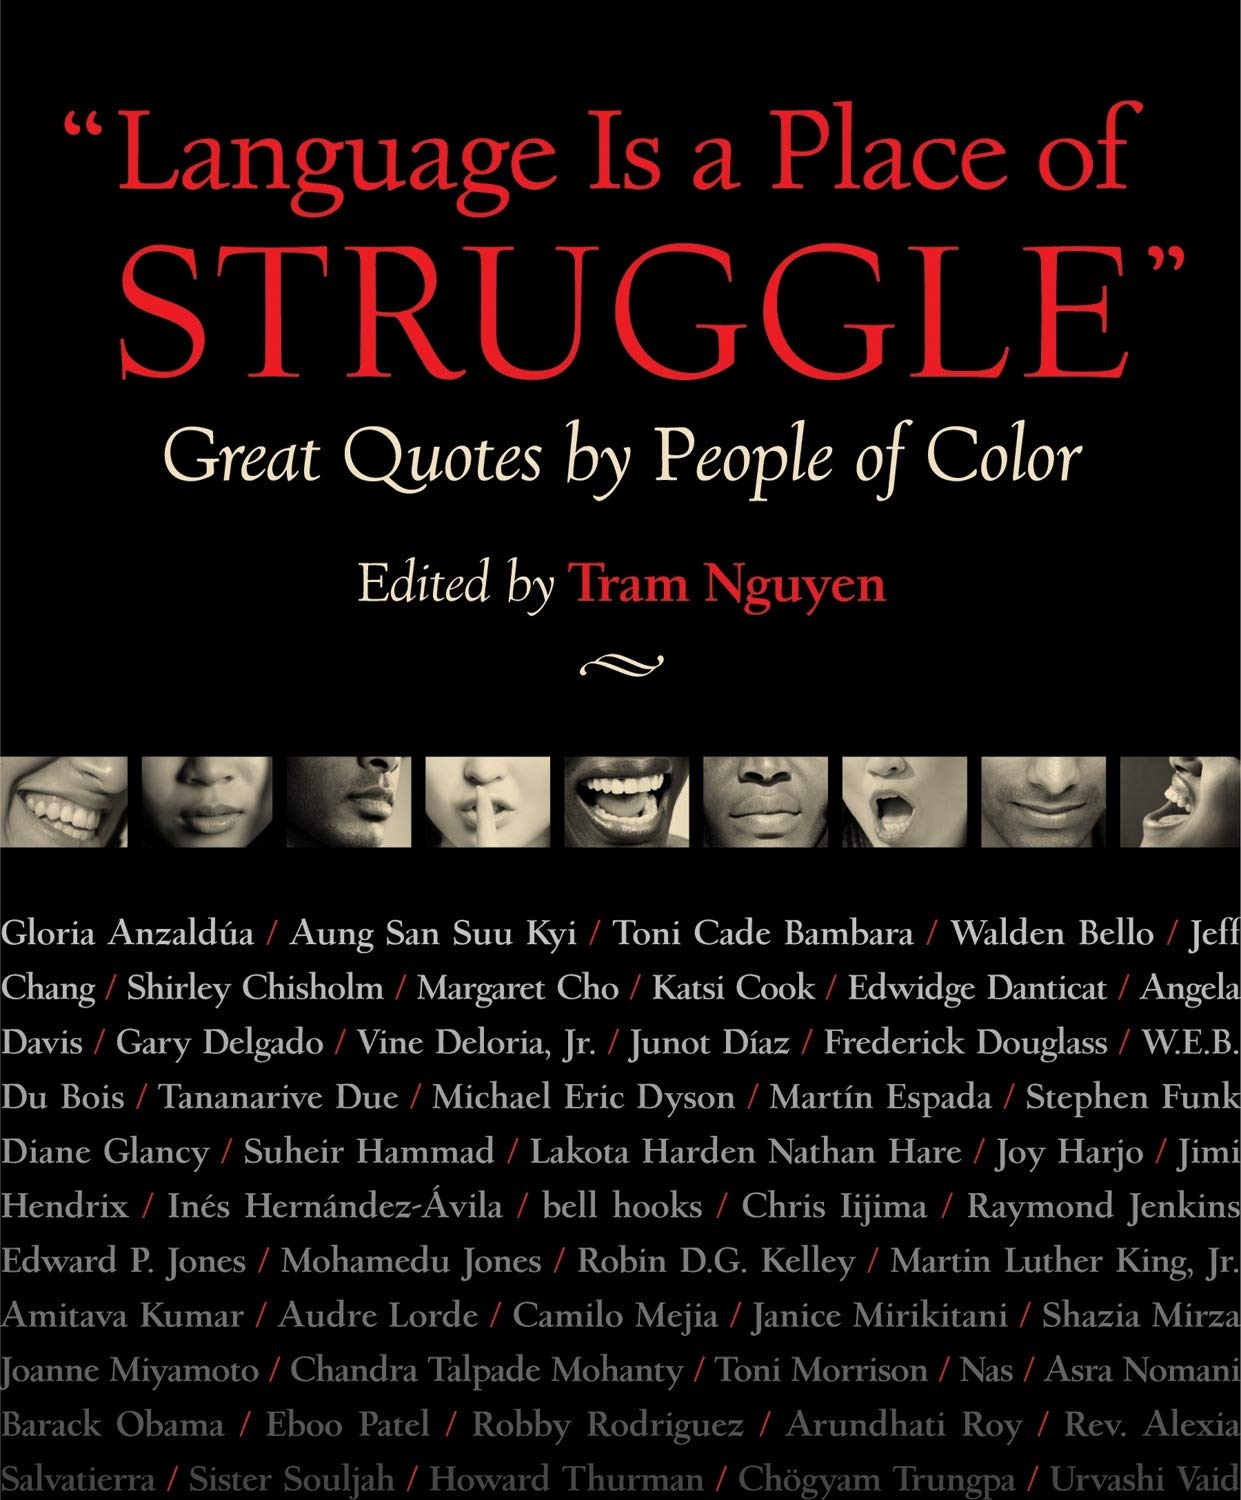 Language Is a Place of Struggle: Great Quotes by People of Color